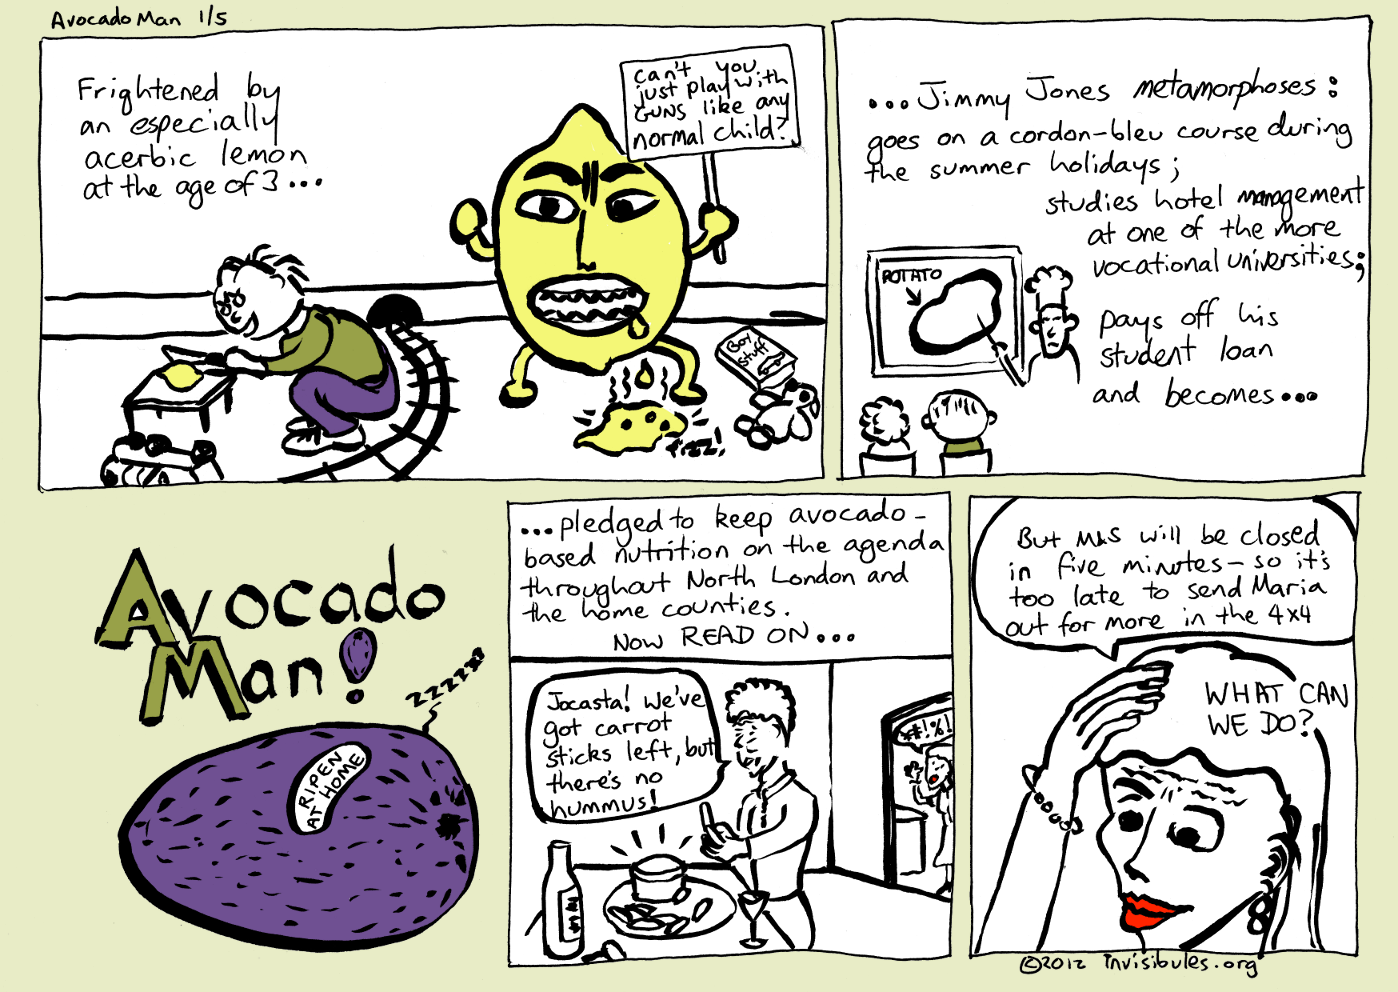 2012-11-04 Avocado Man 1/5